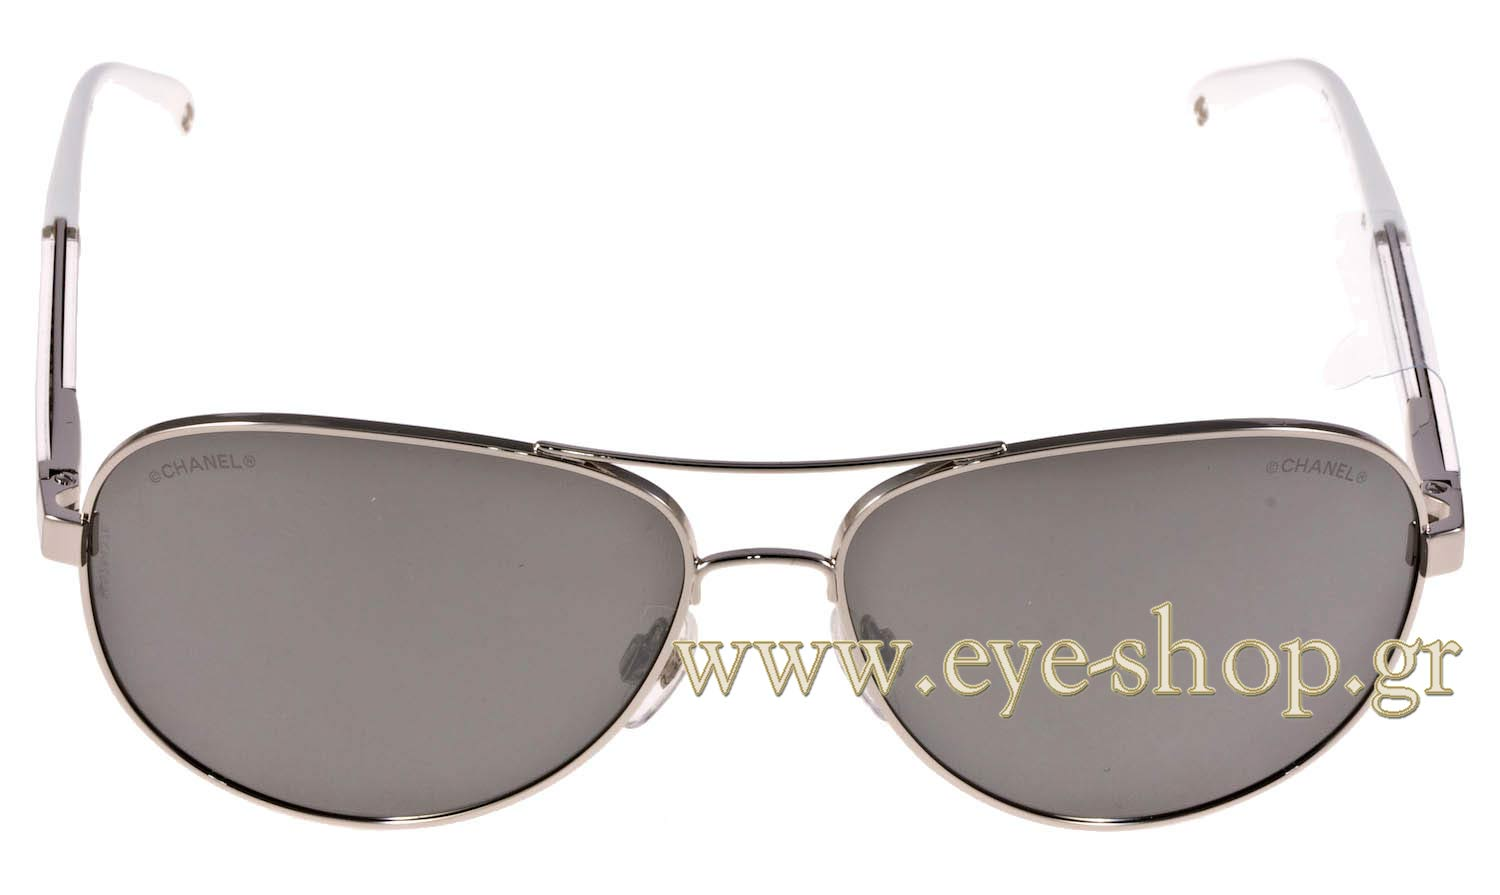 0 chanel 4179 c1244d unisex 2016 eyeshop 2016 ver1 for Collection miroir chanel